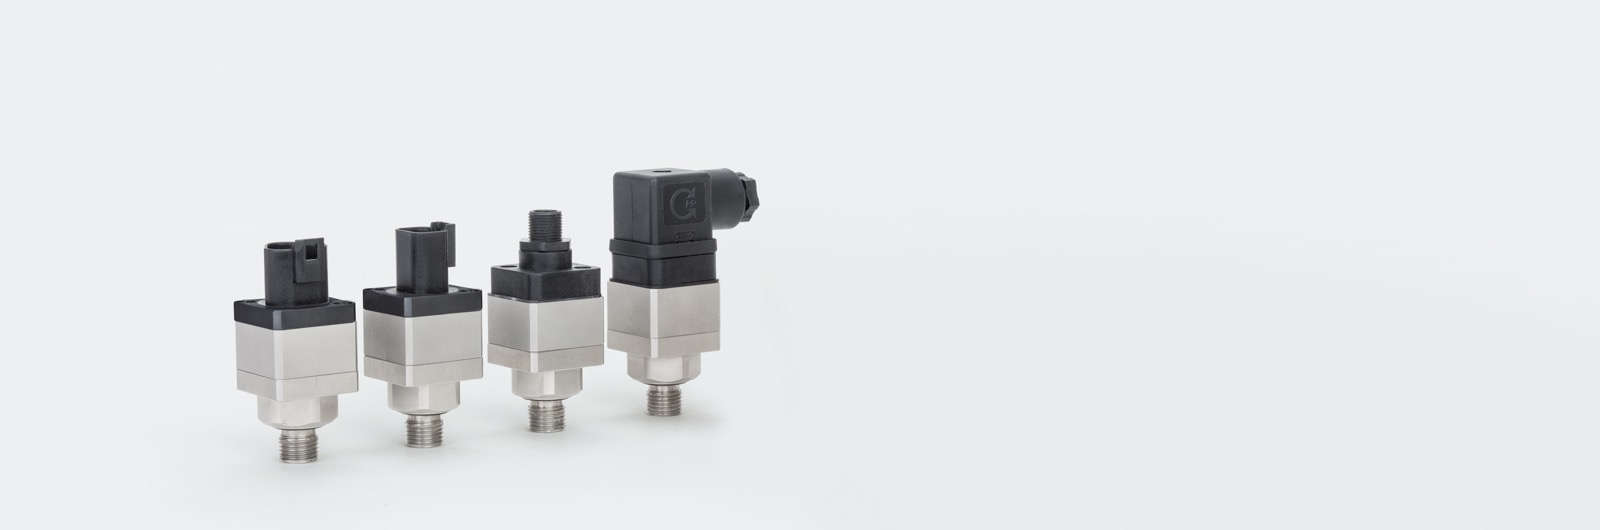 Pressure sensors for hydraulic and pneumatic applications